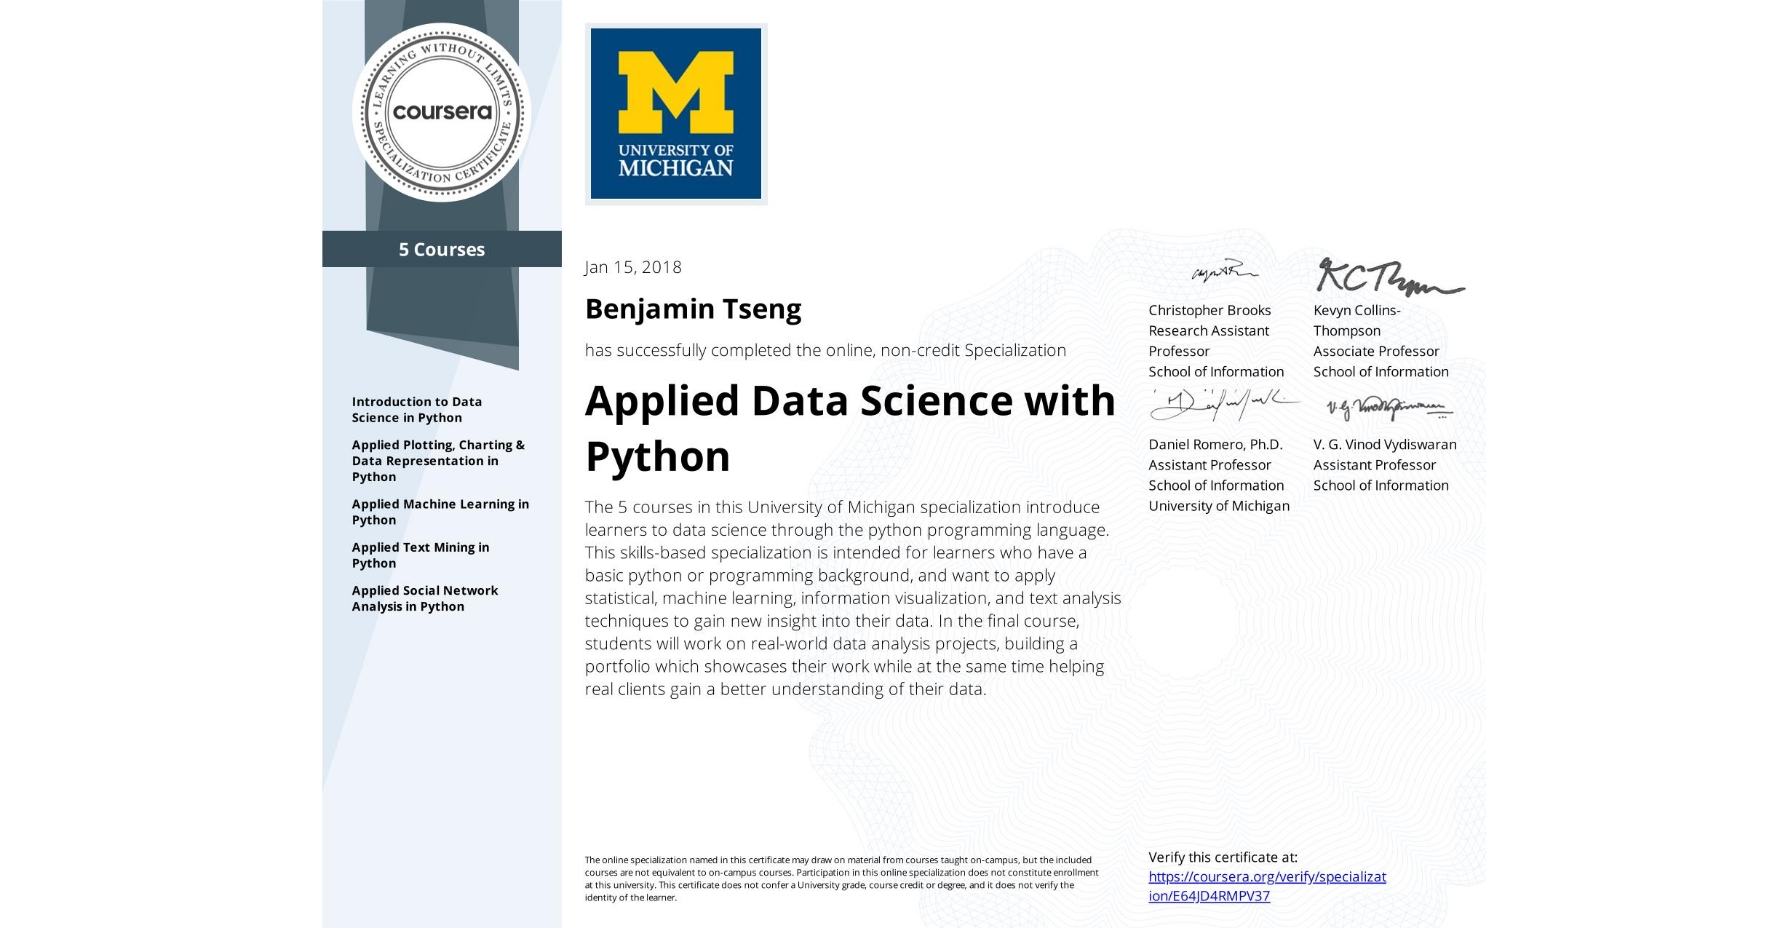 View certificate for Benjamin Tseng, Applied Data Science with Python, offered through Coursera. The 5 courses in this University of Michigan specialization introduce learners to data science through the python programming language. This skills-based specialization is intended for learners who have a basic python or programming background, and want to apply statistical, machine learning, information visualization, and text analysis techniques to gain new insight into their data. In the final course, students will work on real-world data analysis projects, building a portfolio which showcases their work while at the same time helping real clients gain a better understanding of their data.